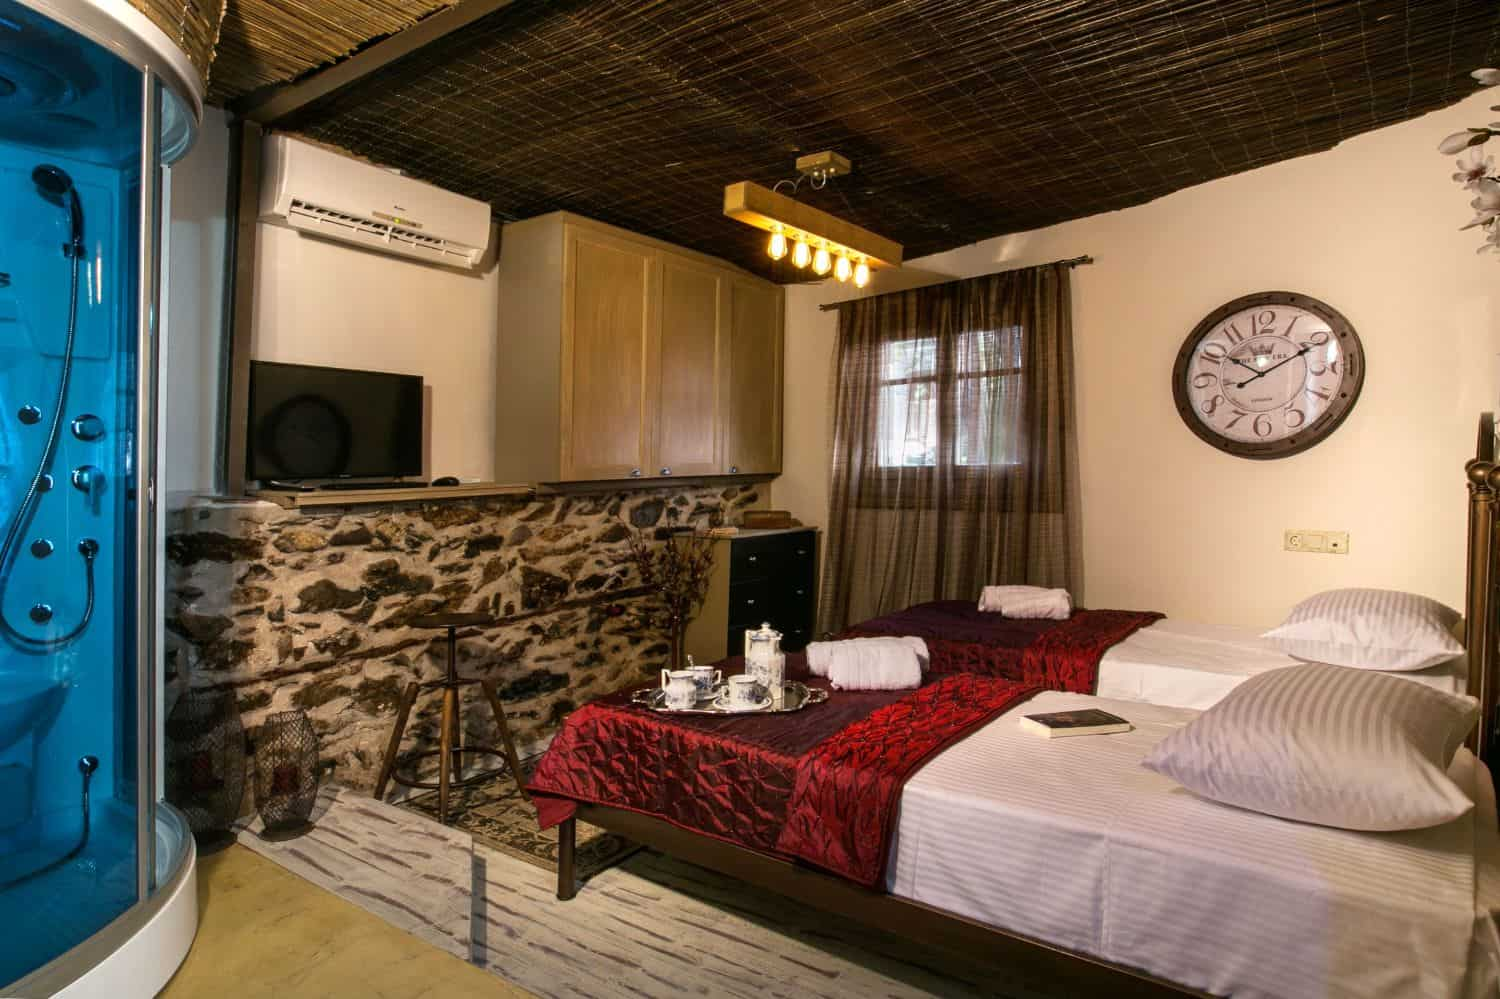 #Petite: Bedroom/Living area with Shower/Sauna, 2 Single Beds